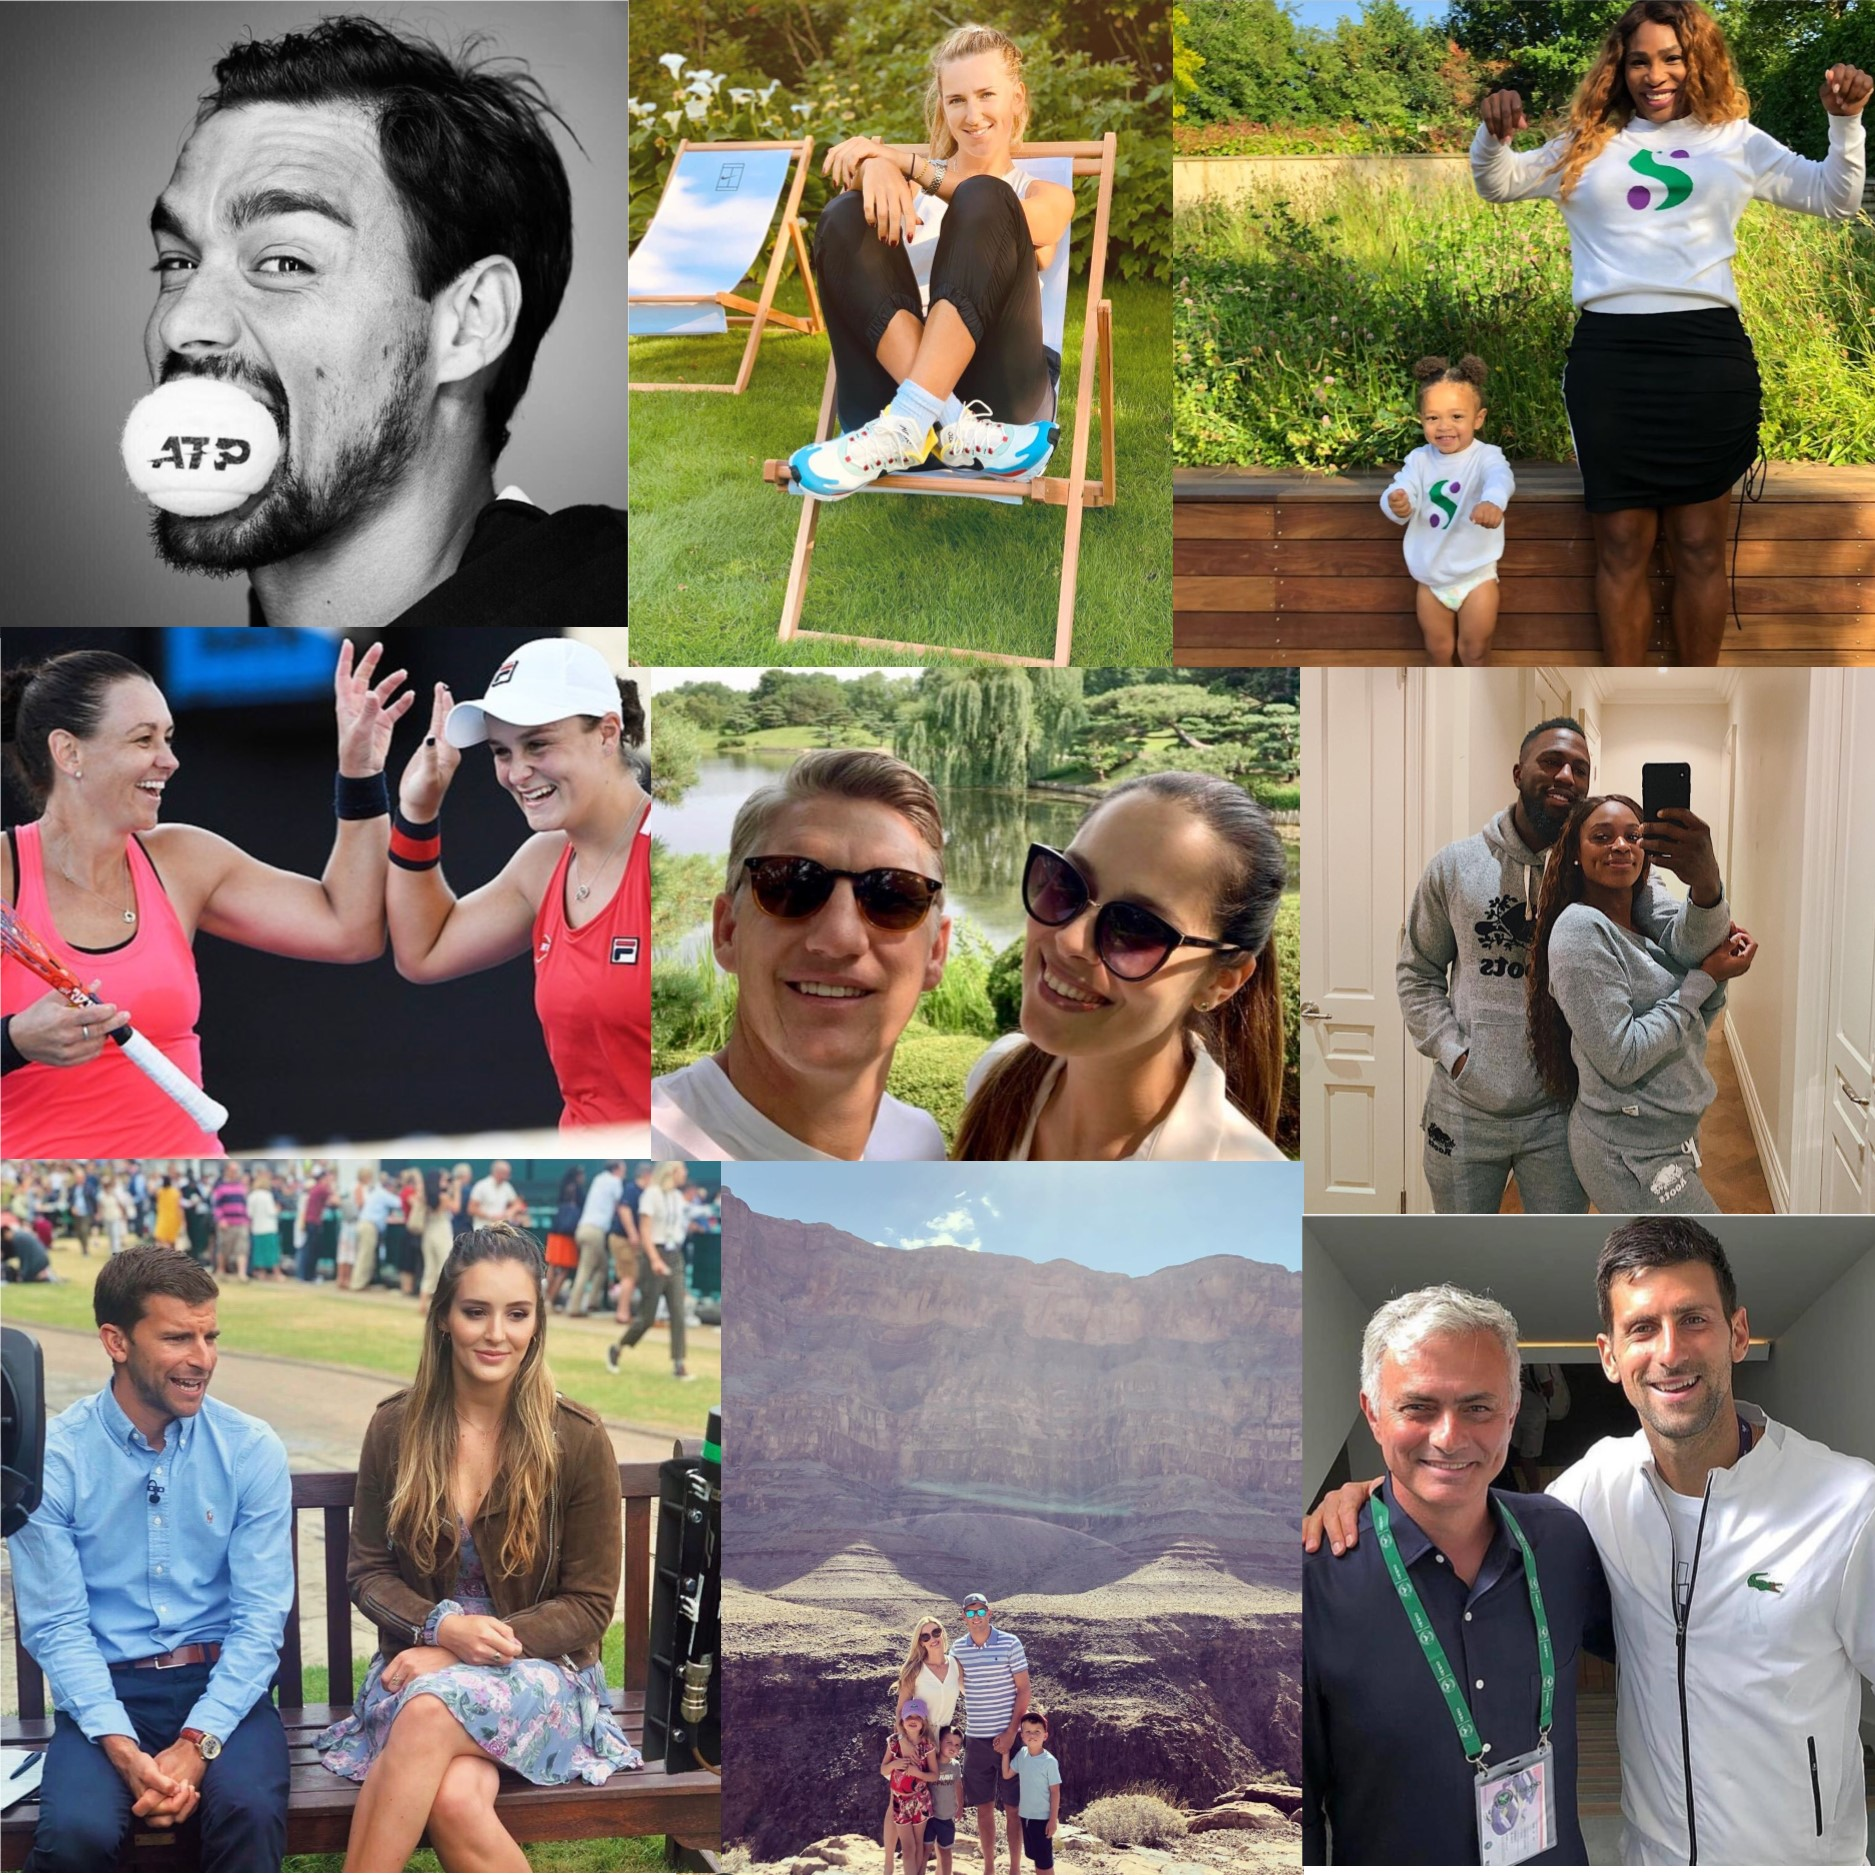 Top 10 Tennis Players to Follow On Instagram